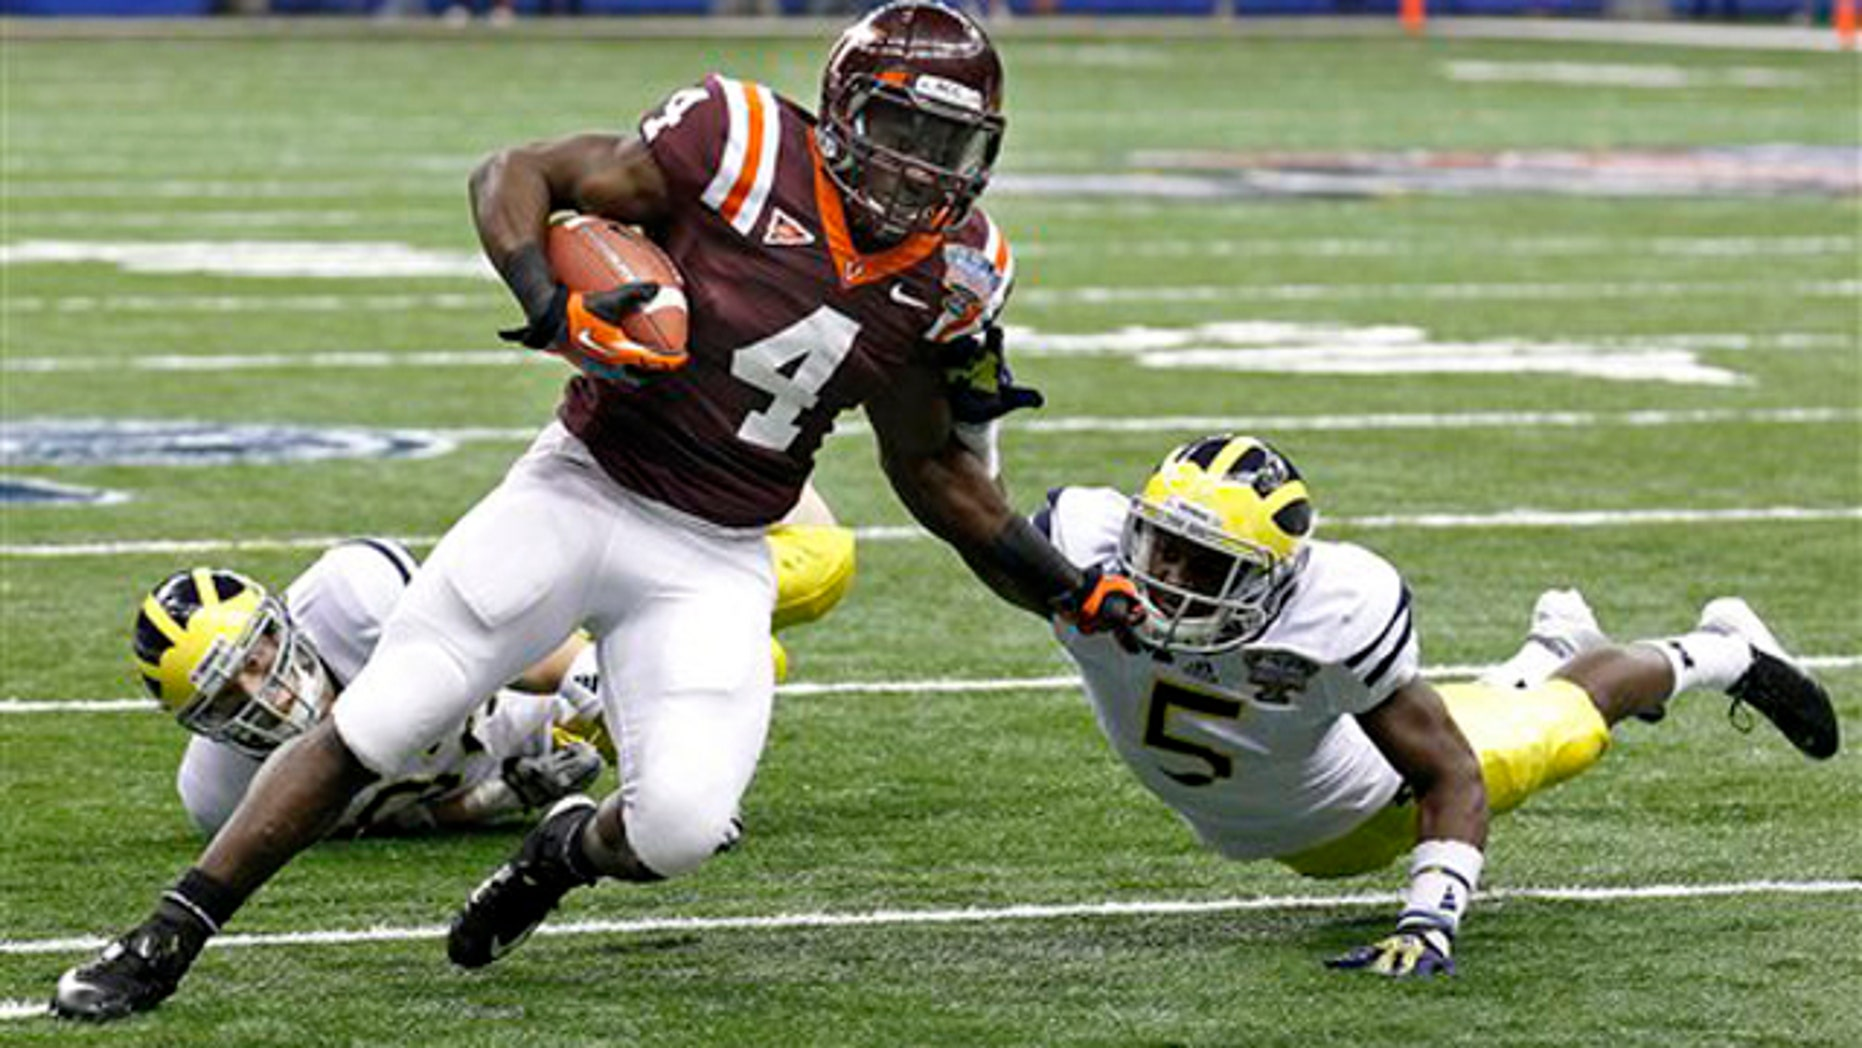 Jan. 3, 2012: Virginia Tech running back David Wilson (4) tries to turn the corner past Michigan cornerback Courtney Avery (5) and safety Jordan Kovacs during the first quarter of the Sugar Bowl NCAA college football game in New Orleans.